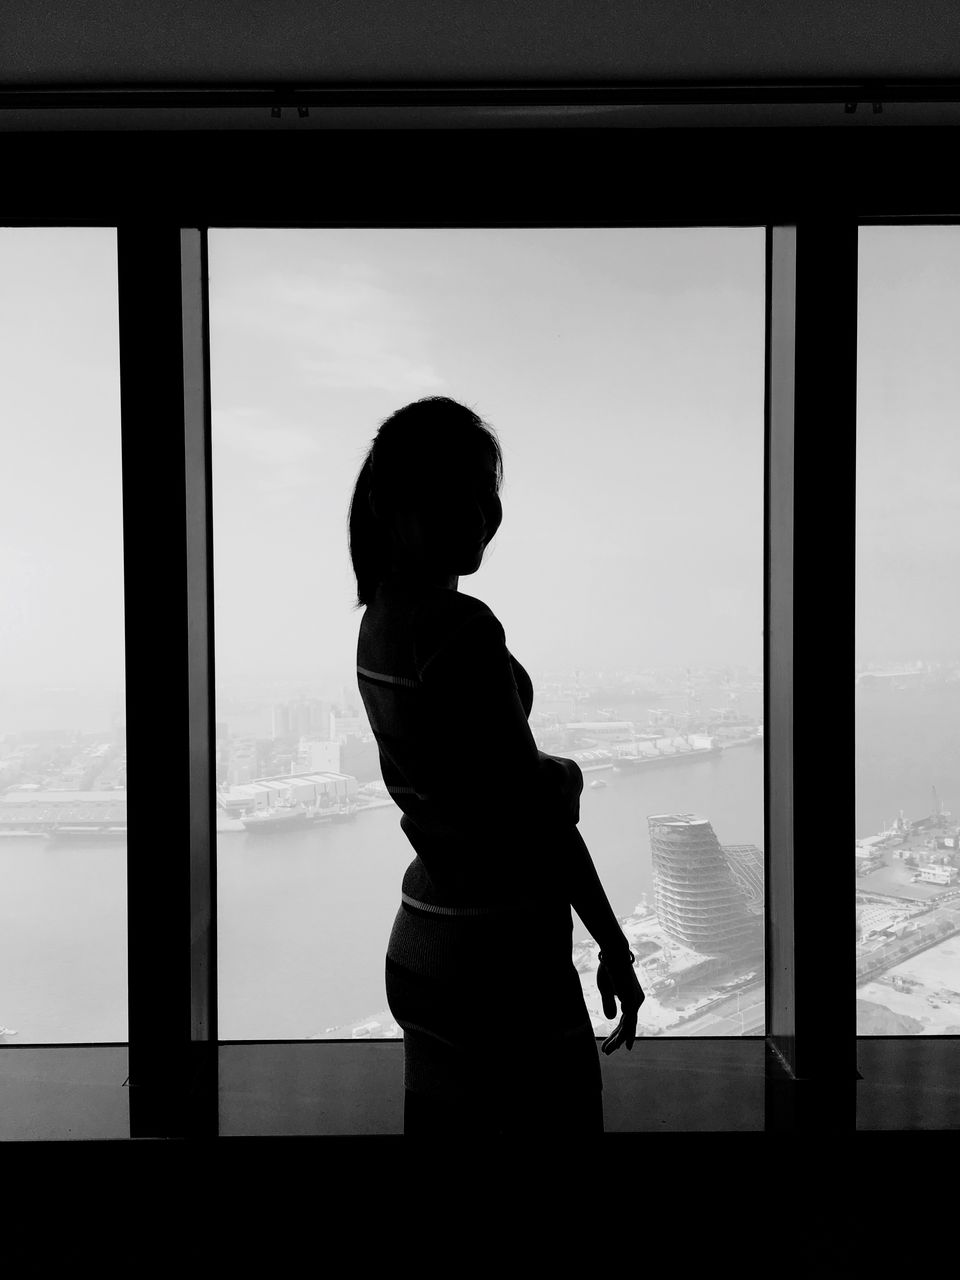 window, glass - material, transparent, real people, lifestyles, one person, indoors, standing, looking through window, looking, leisure activity, side view, women, sky, day, three quarter length, silhouette, child, glass, looking at view